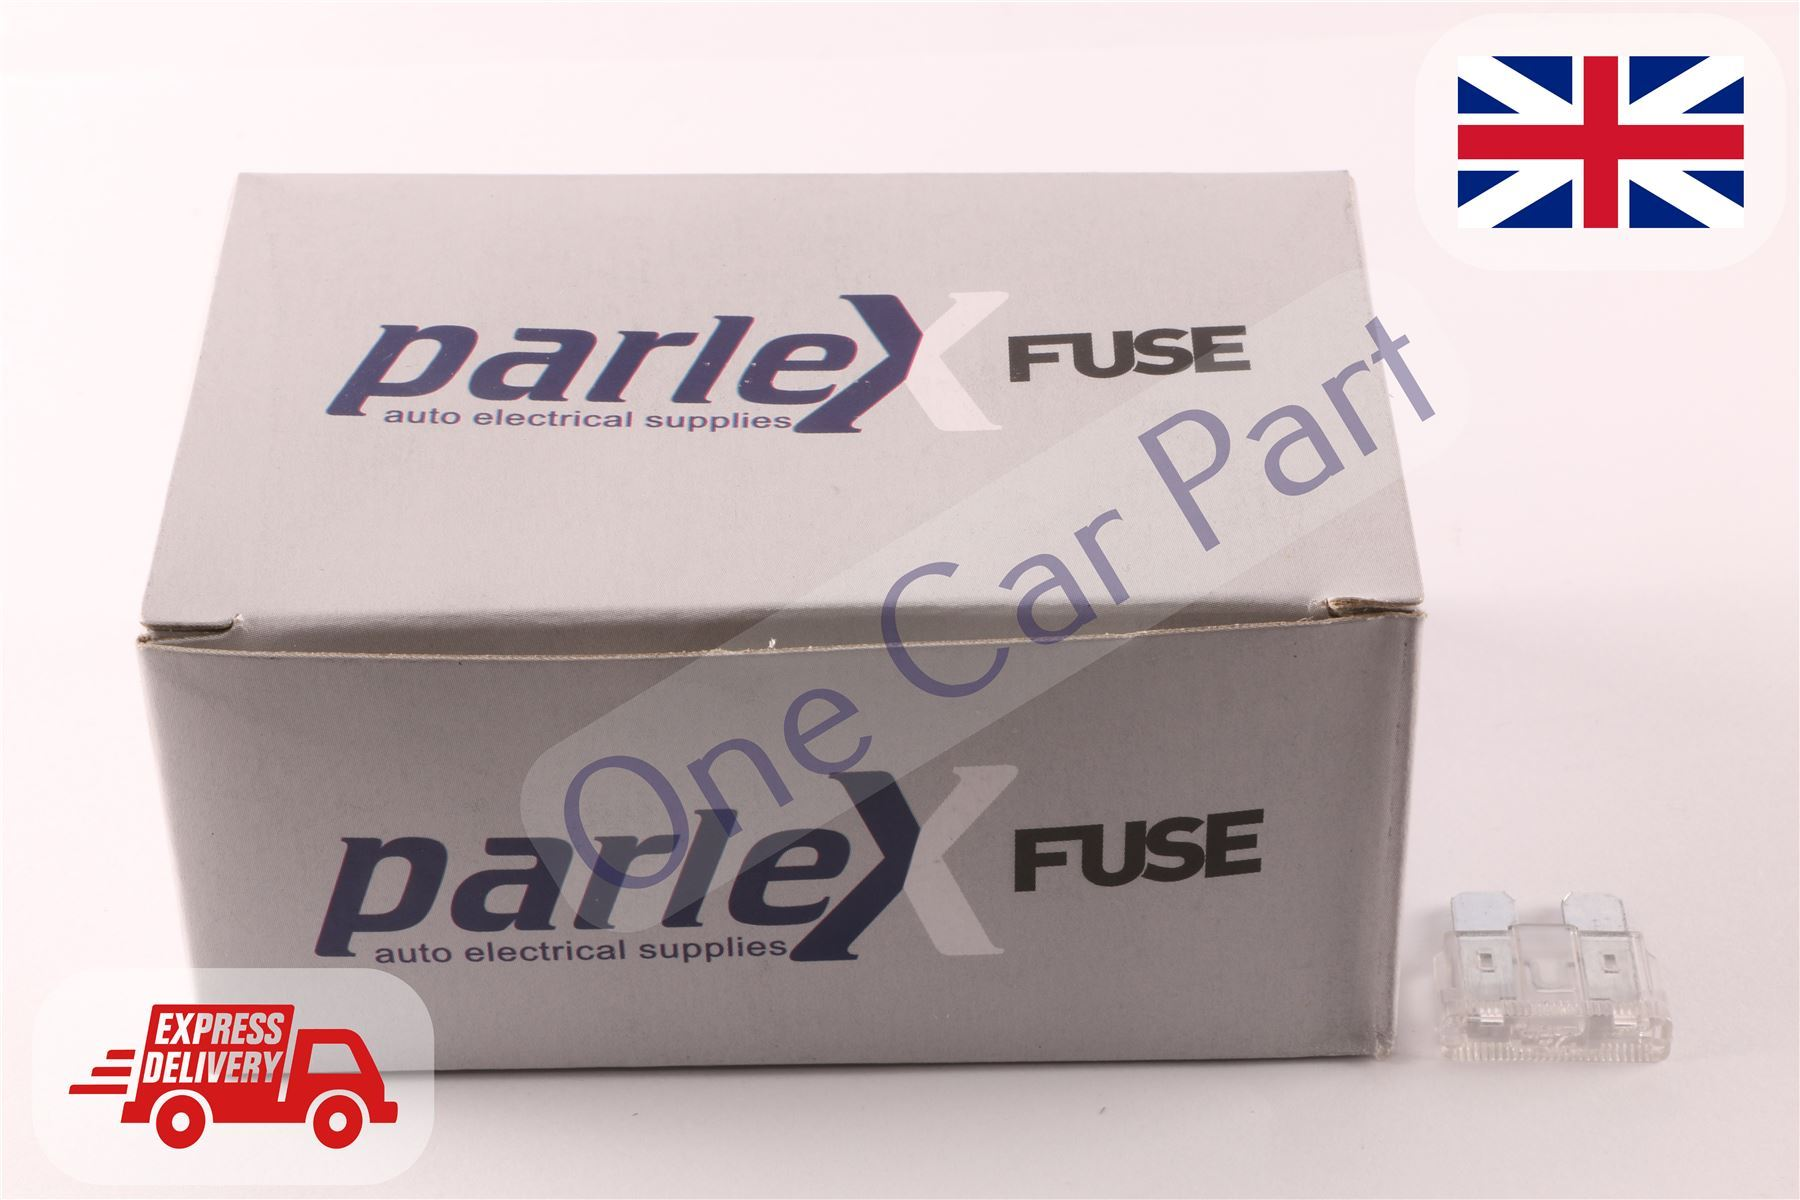 5x Blade Fuses Car Van Boat Tractor Auto Electrical Standart 25 80 Fuse Box Amper